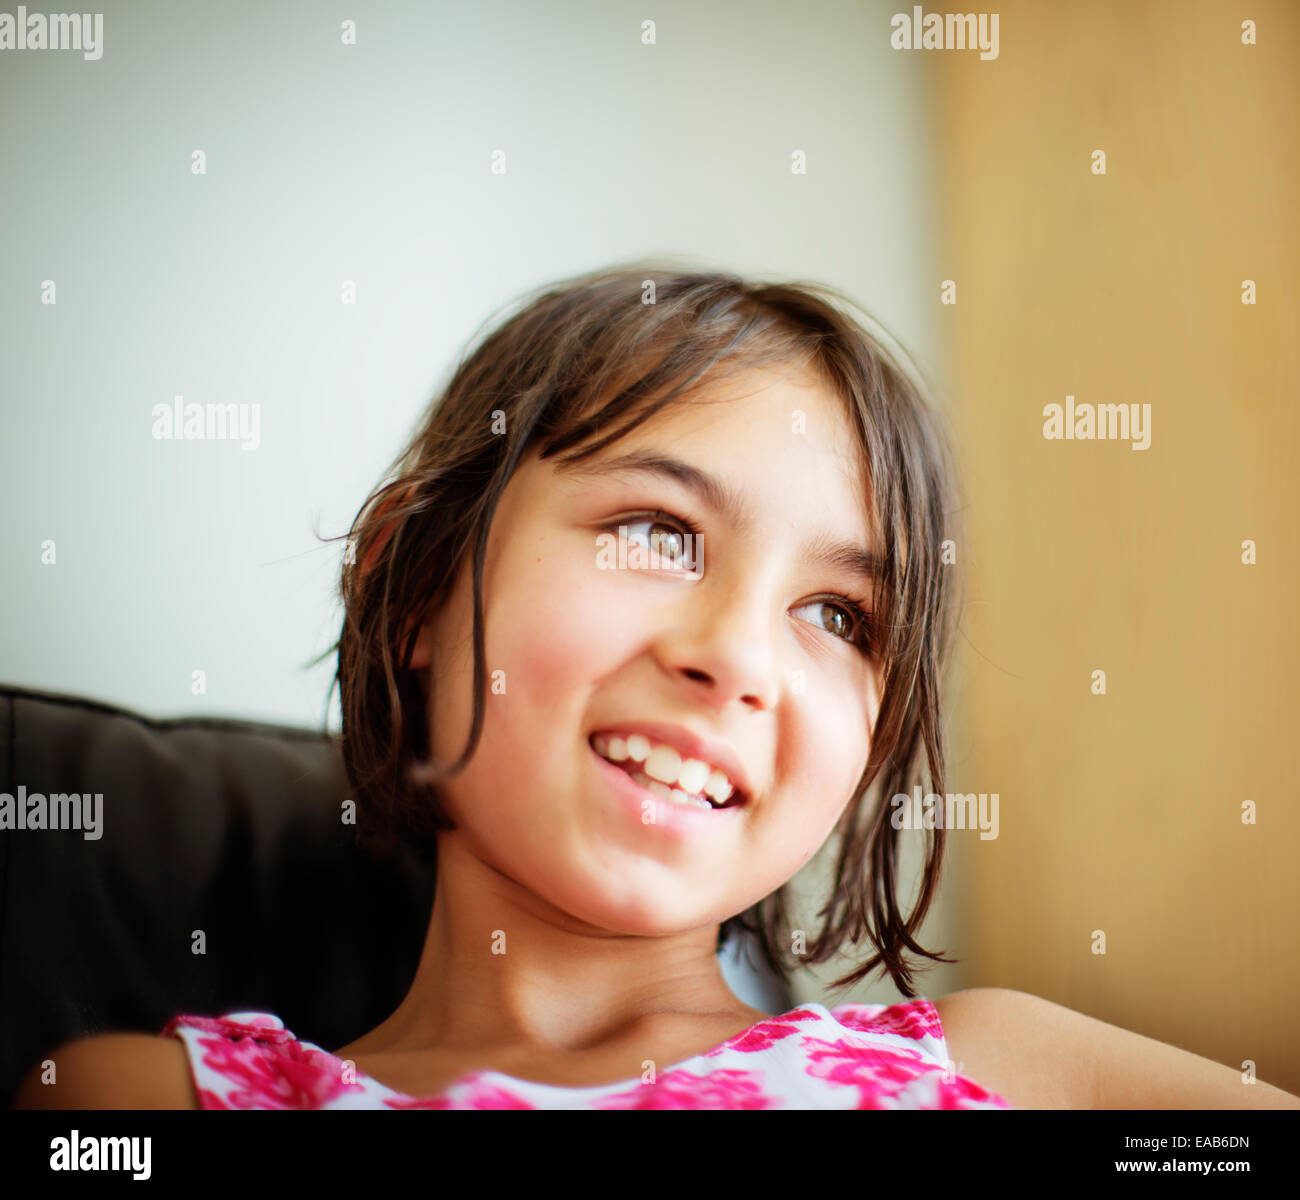 Smiling girl portrait - Stock Image